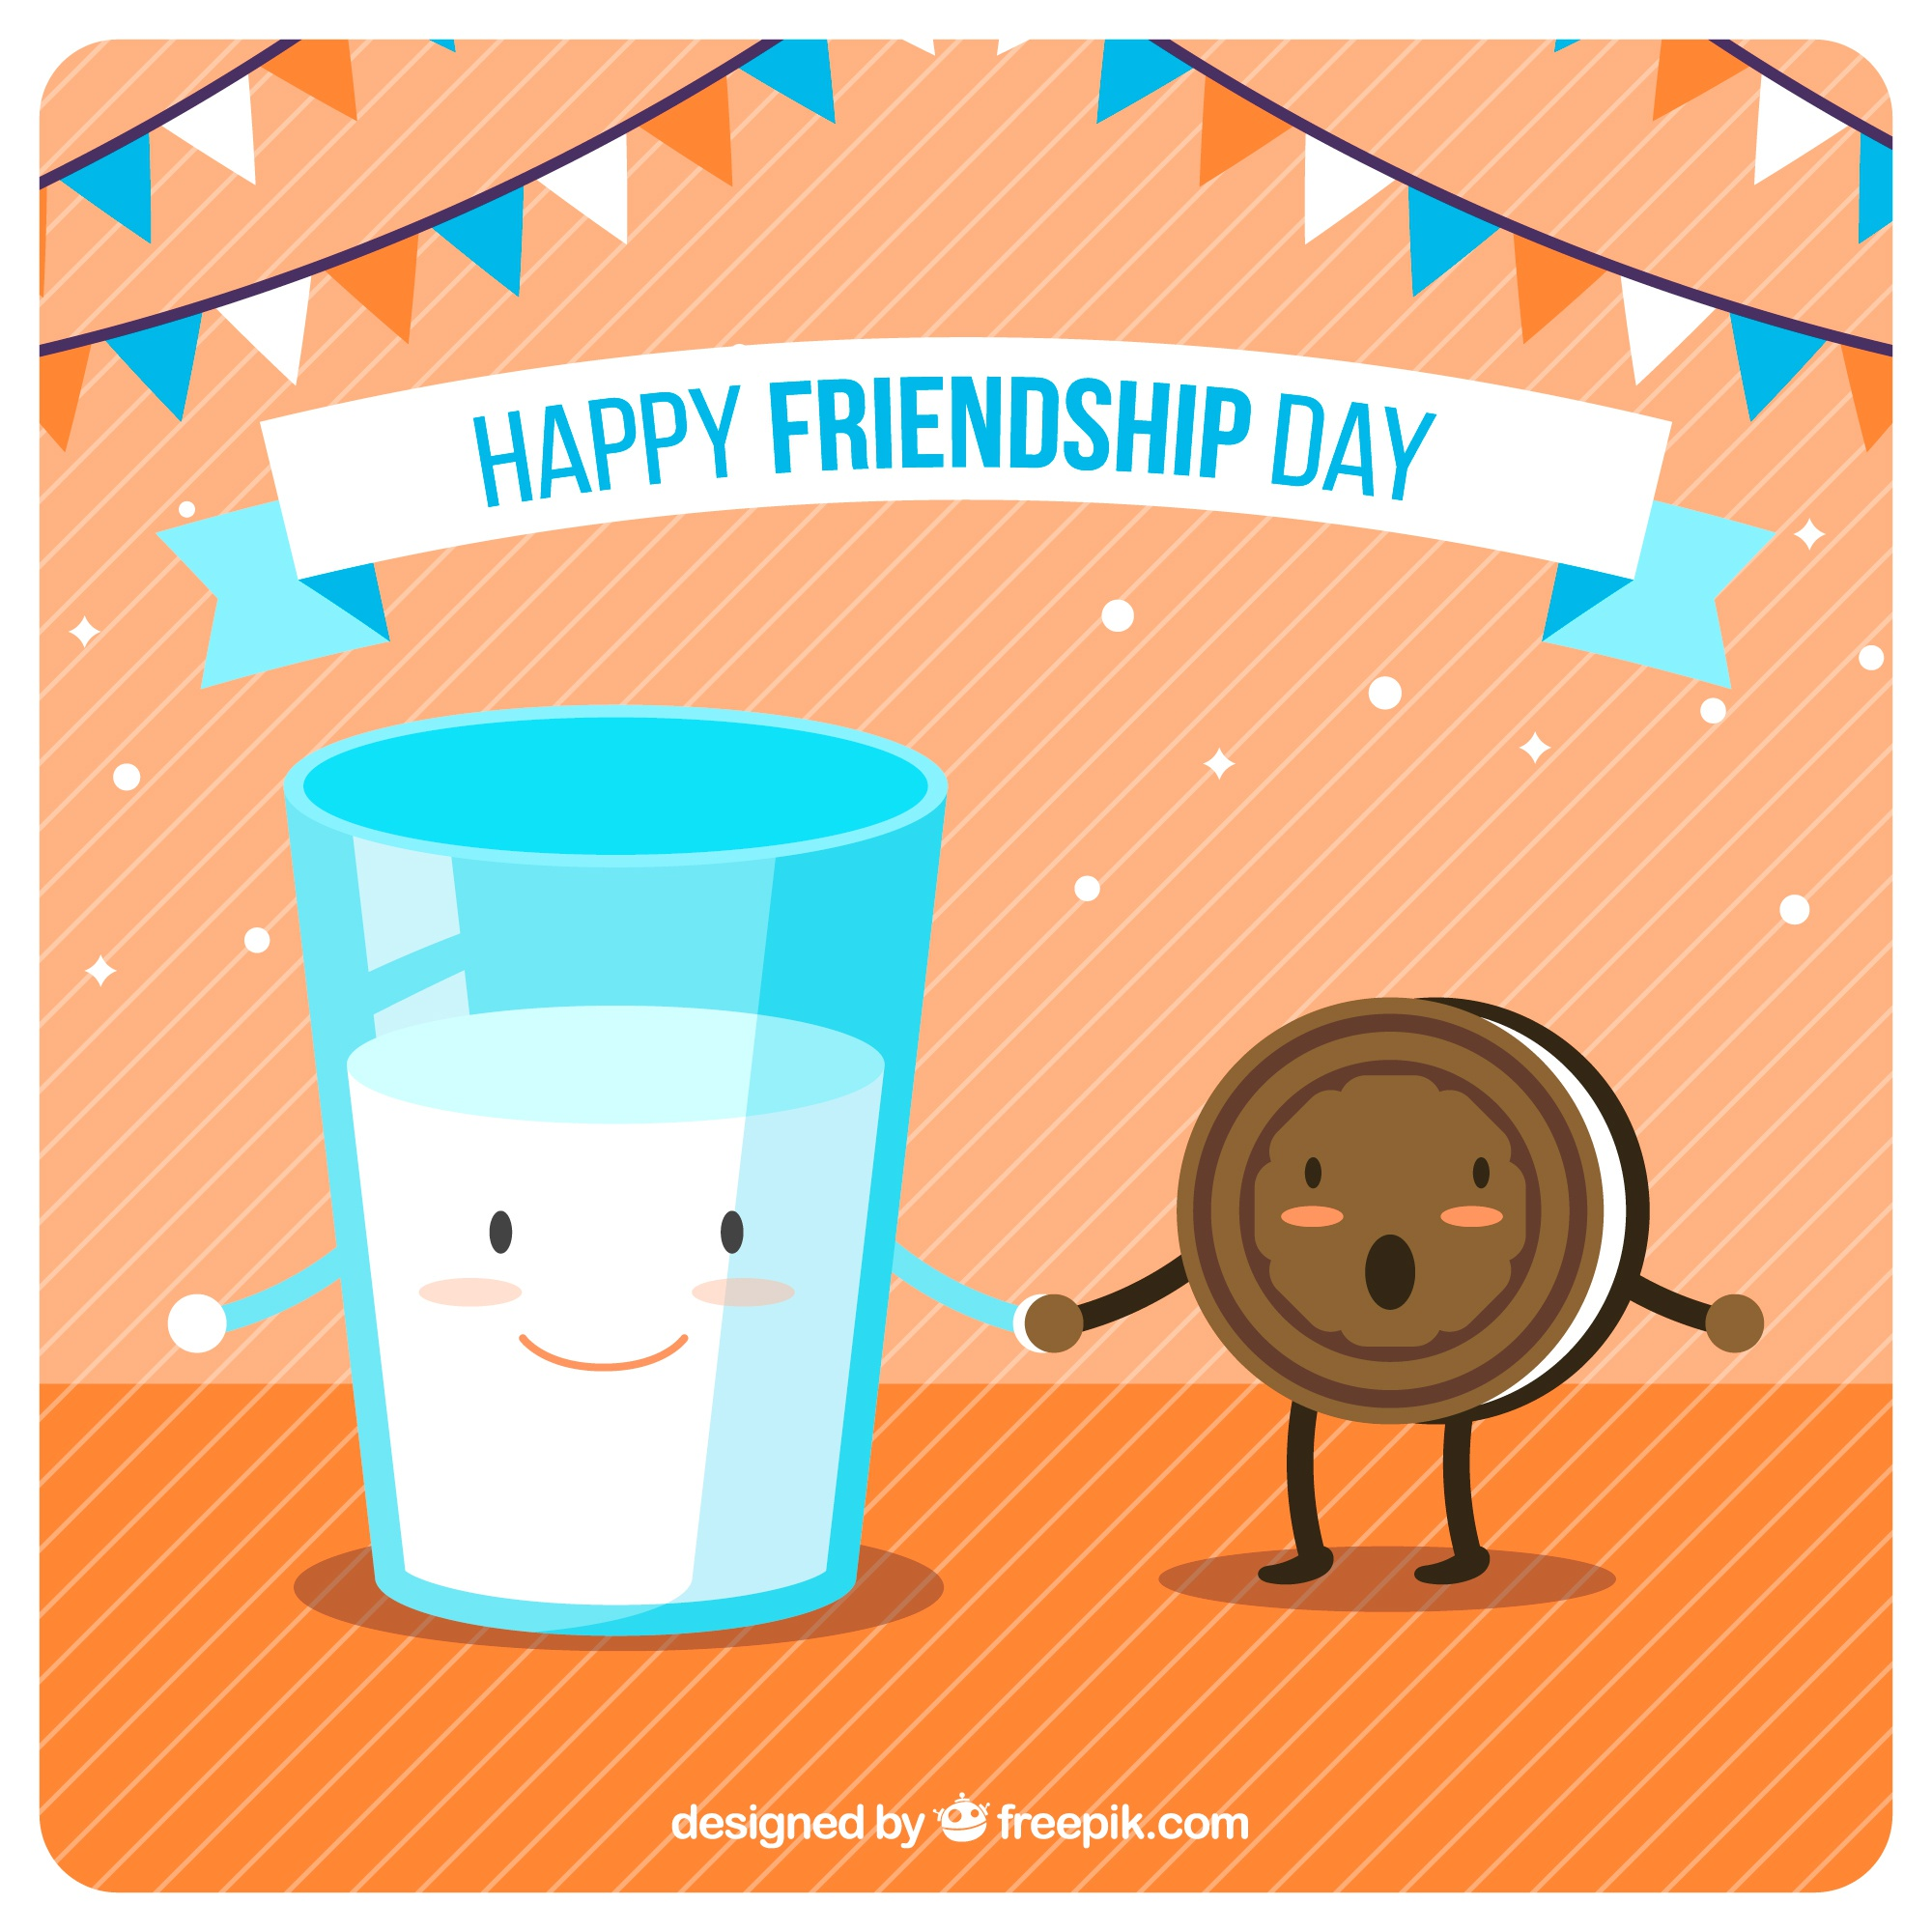 Friendship day background with cartoon food